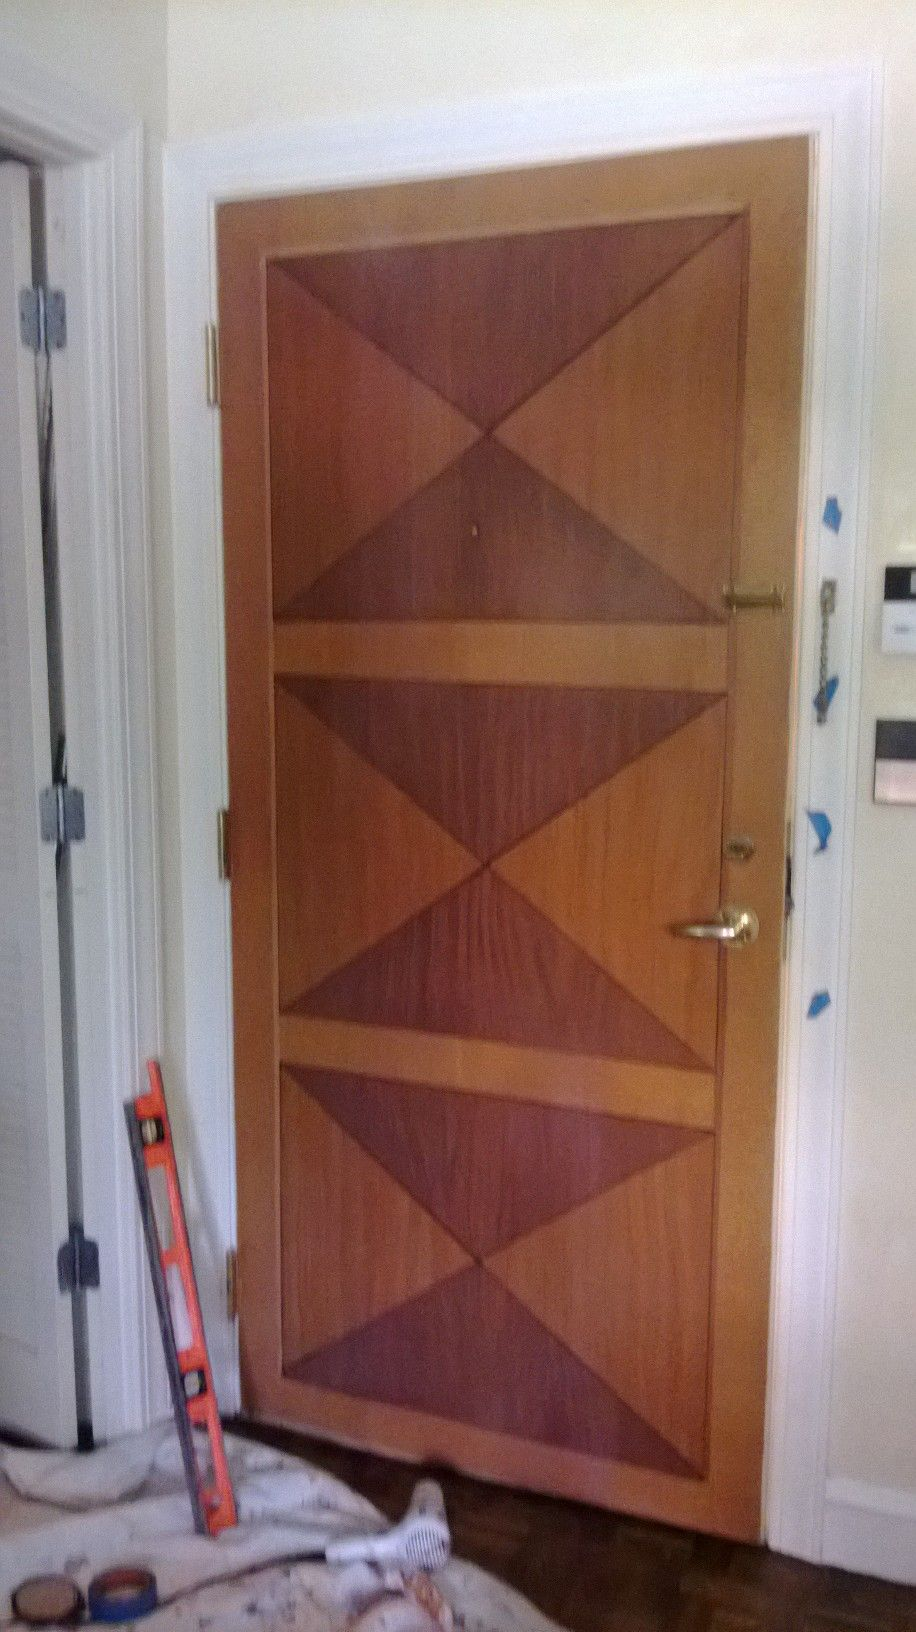 Plain Hollow Core Door With Faux Wood Paint Projects And Ideas From Pinterest Pinterest